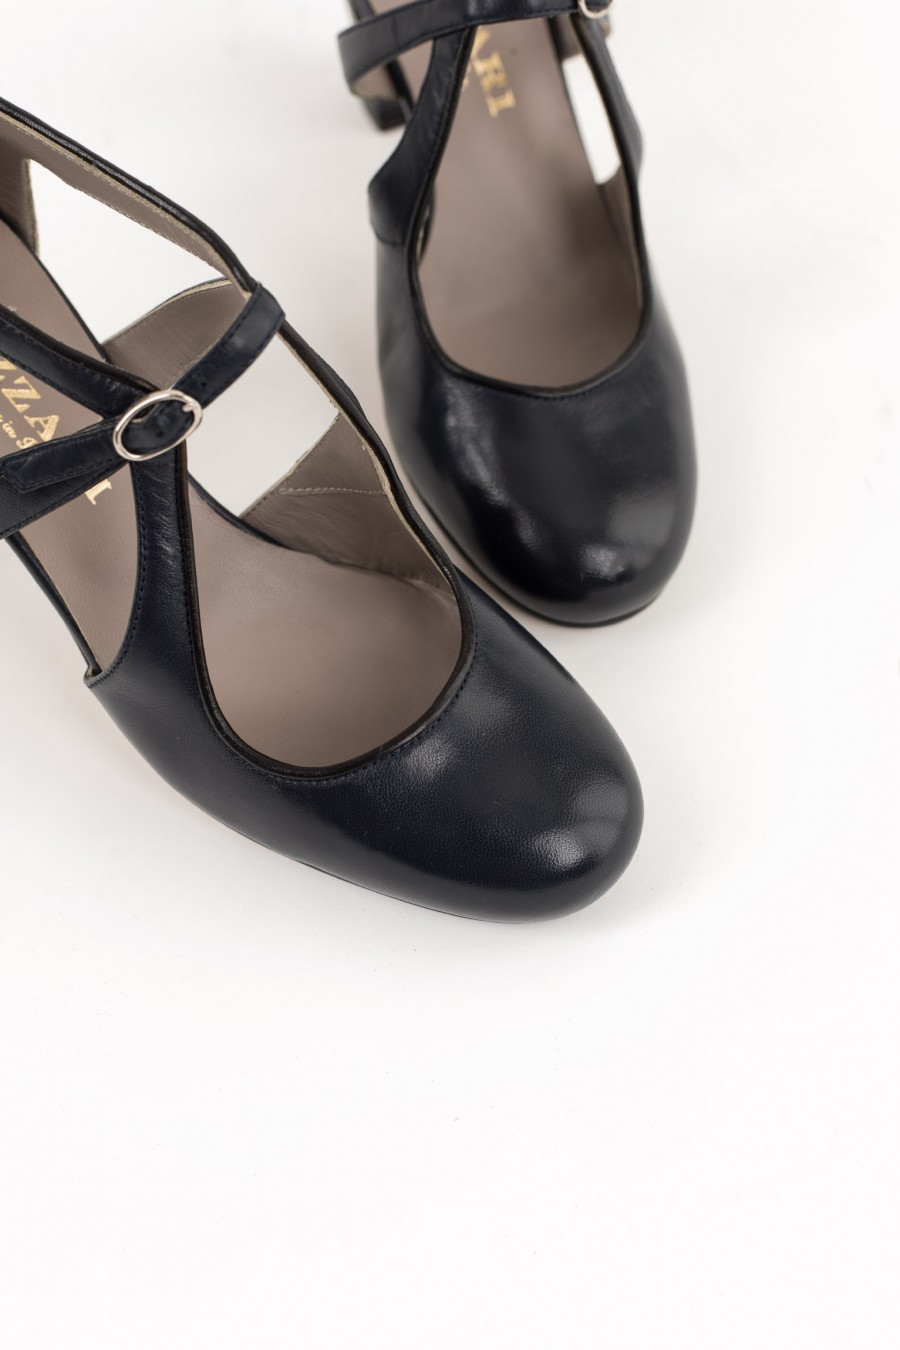 Rounded toe tango shoes